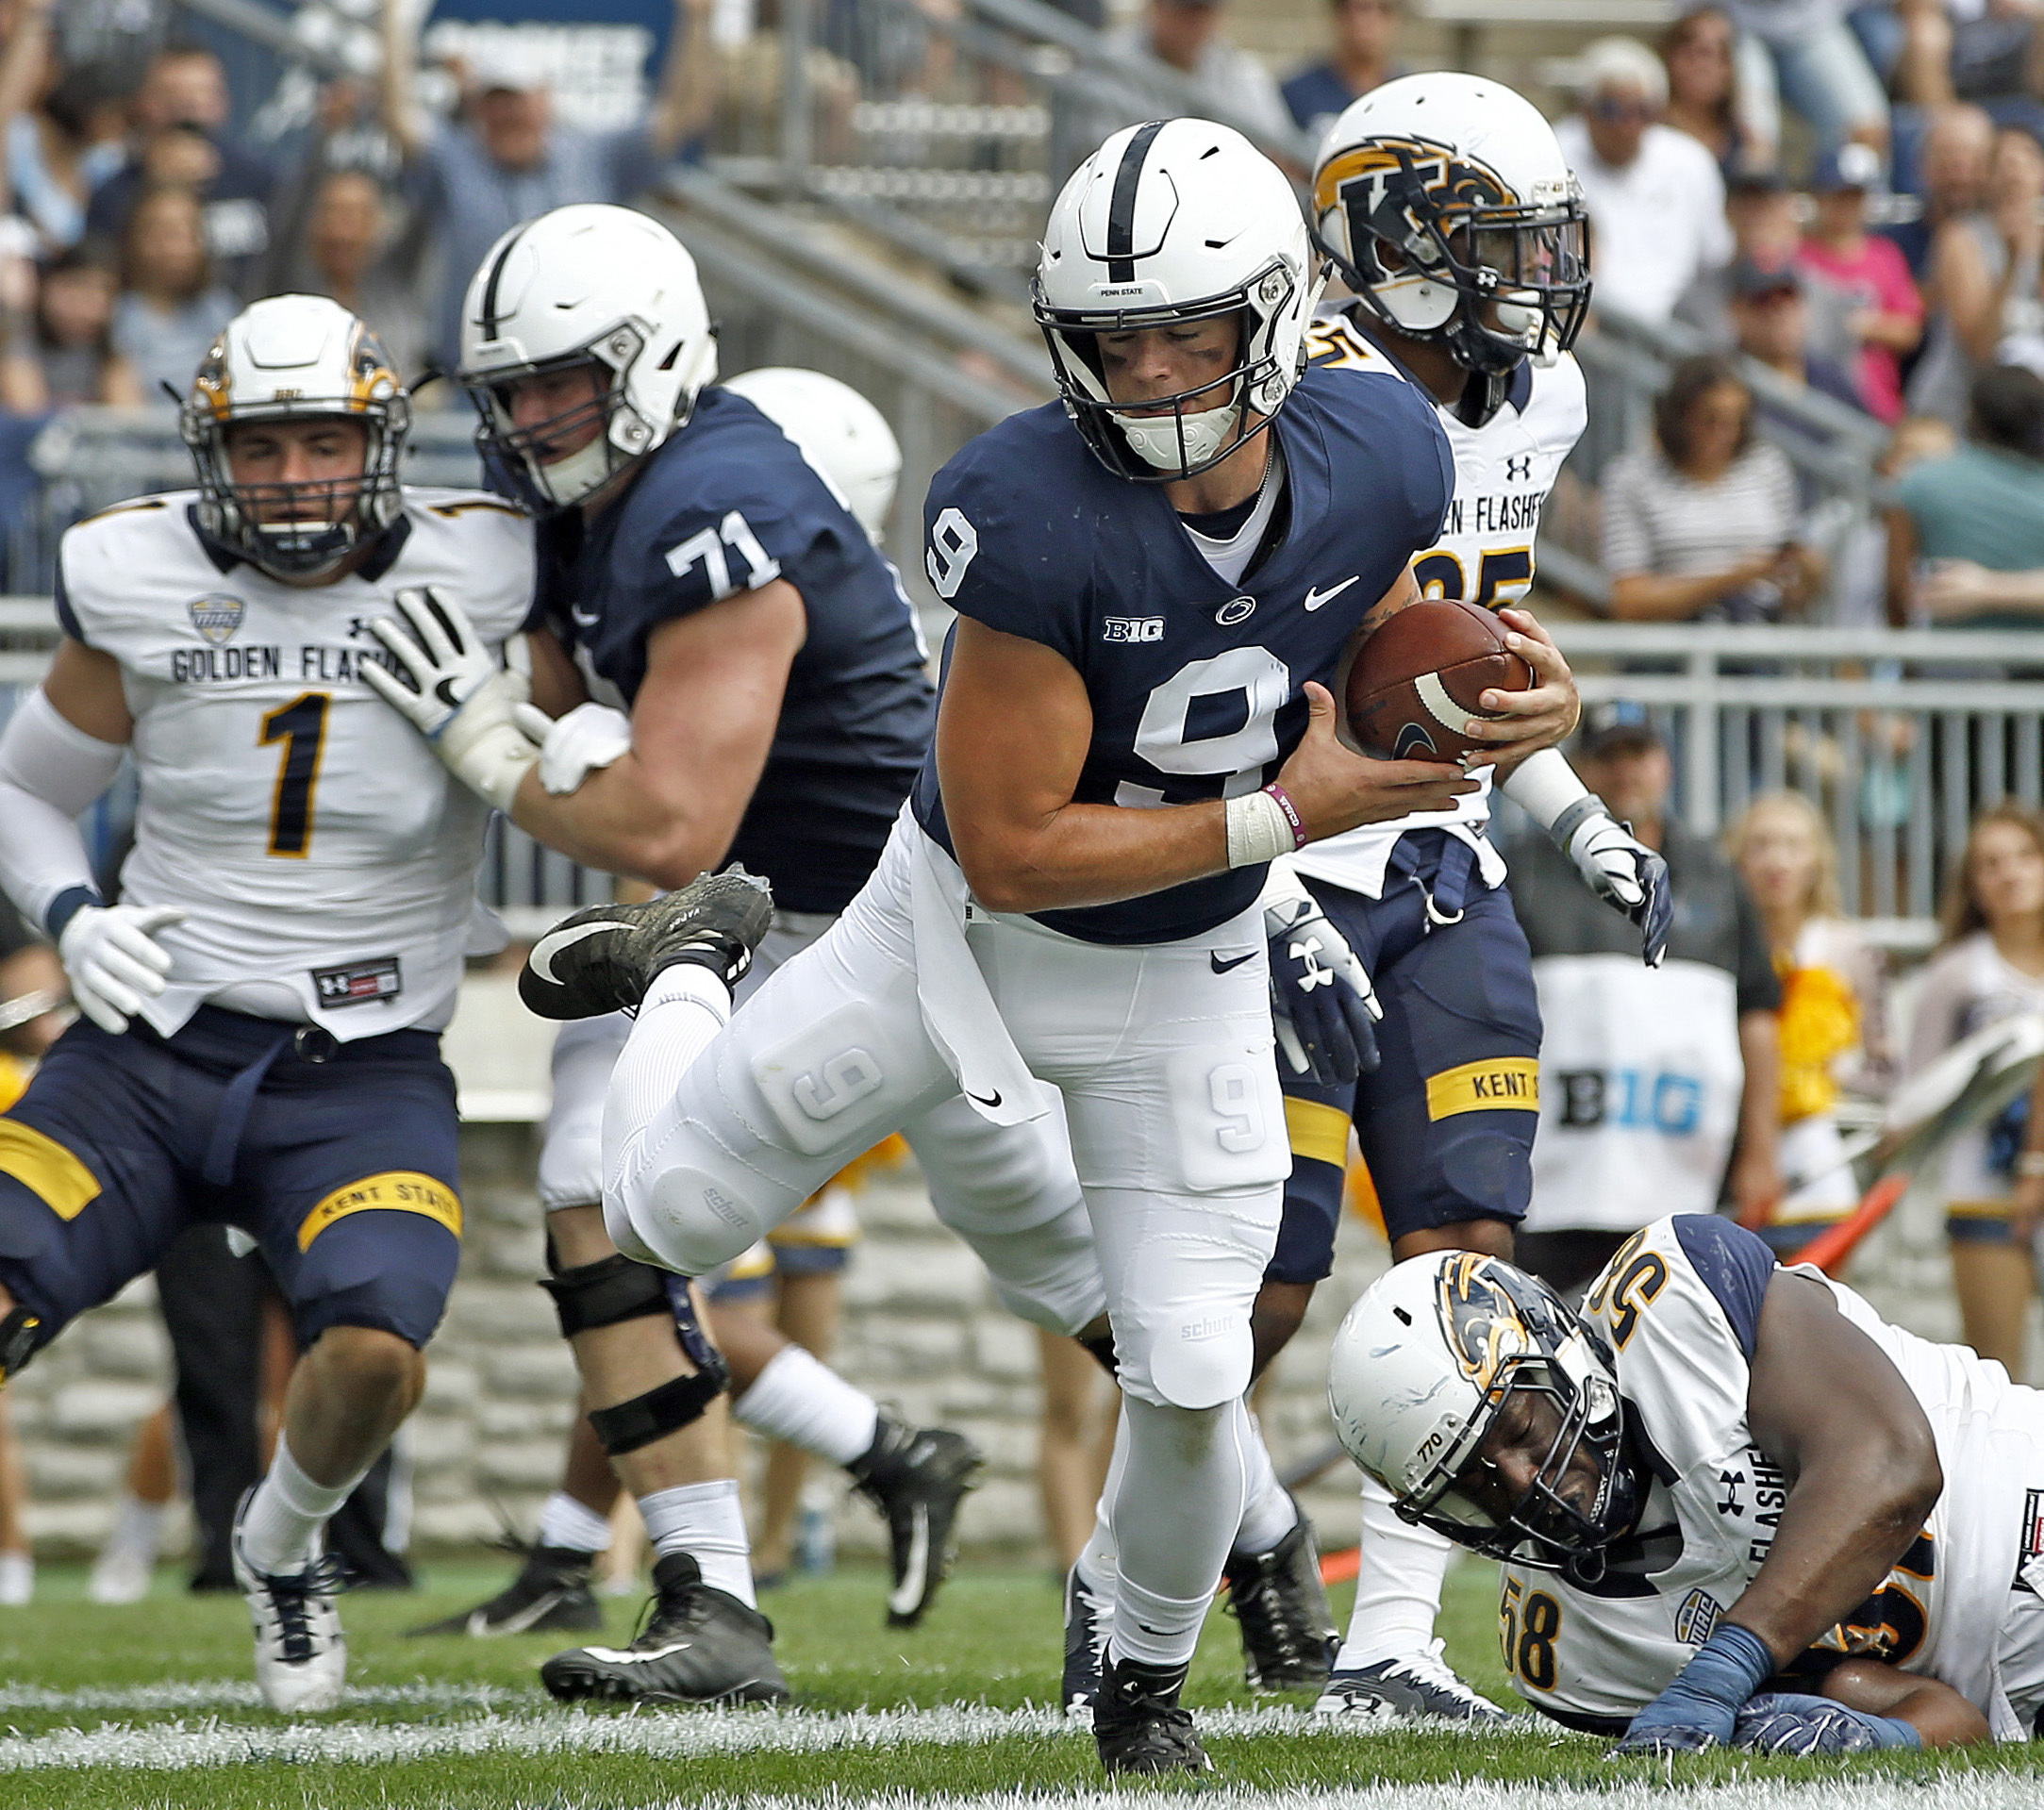 Trace McSorley runs in for a touchdown on Saturday.